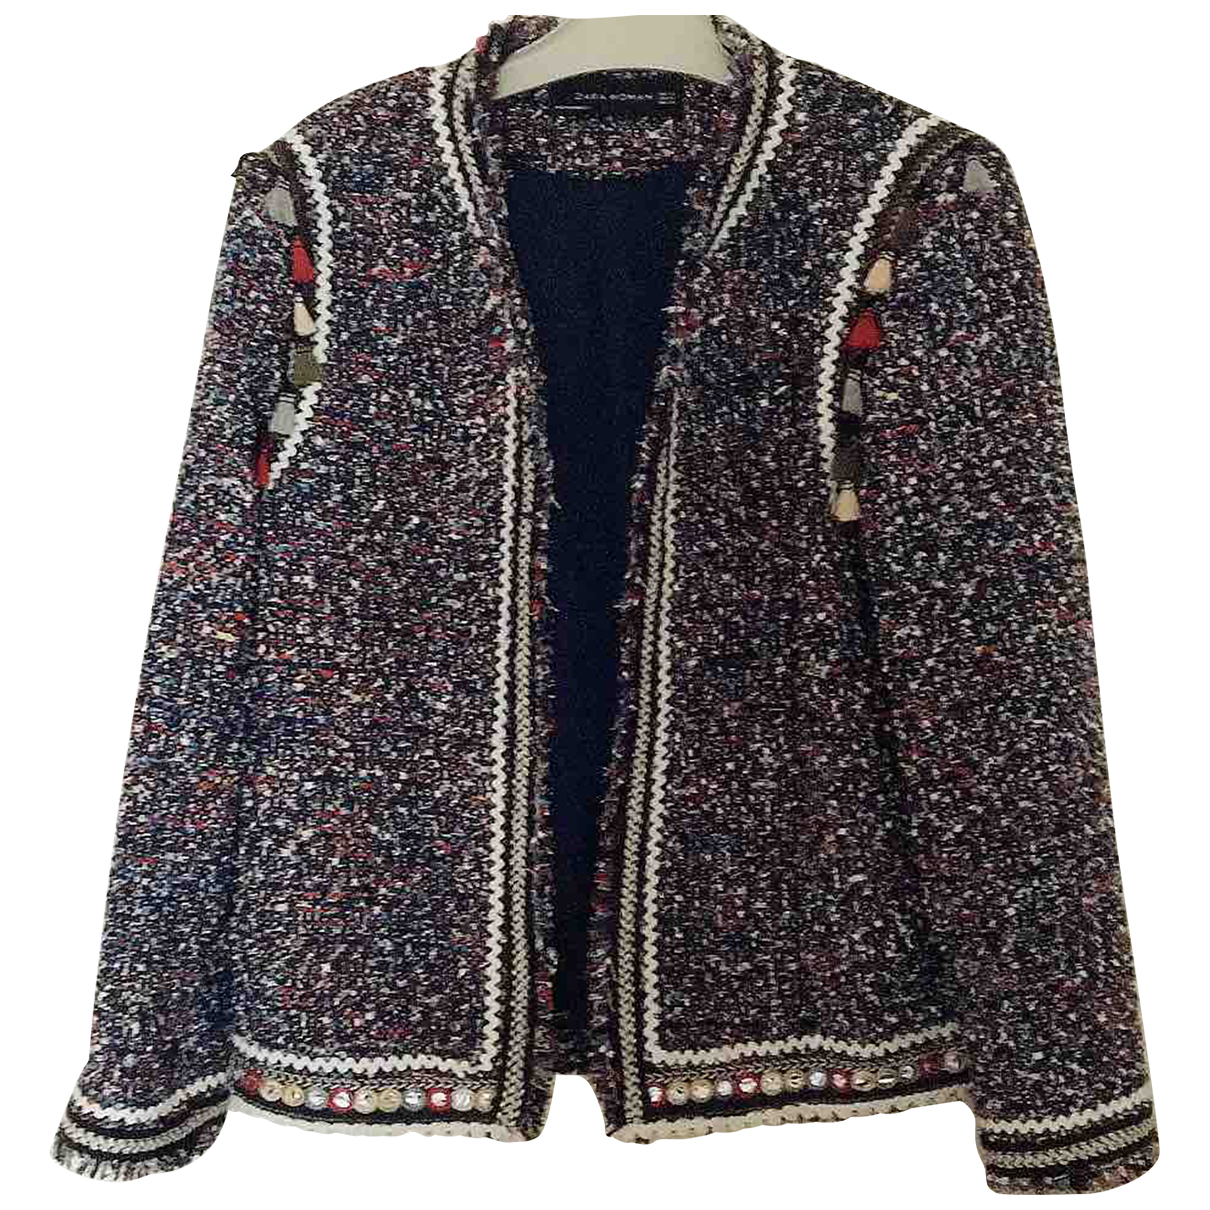 Zara \N Jacke in  Bunt Tweed